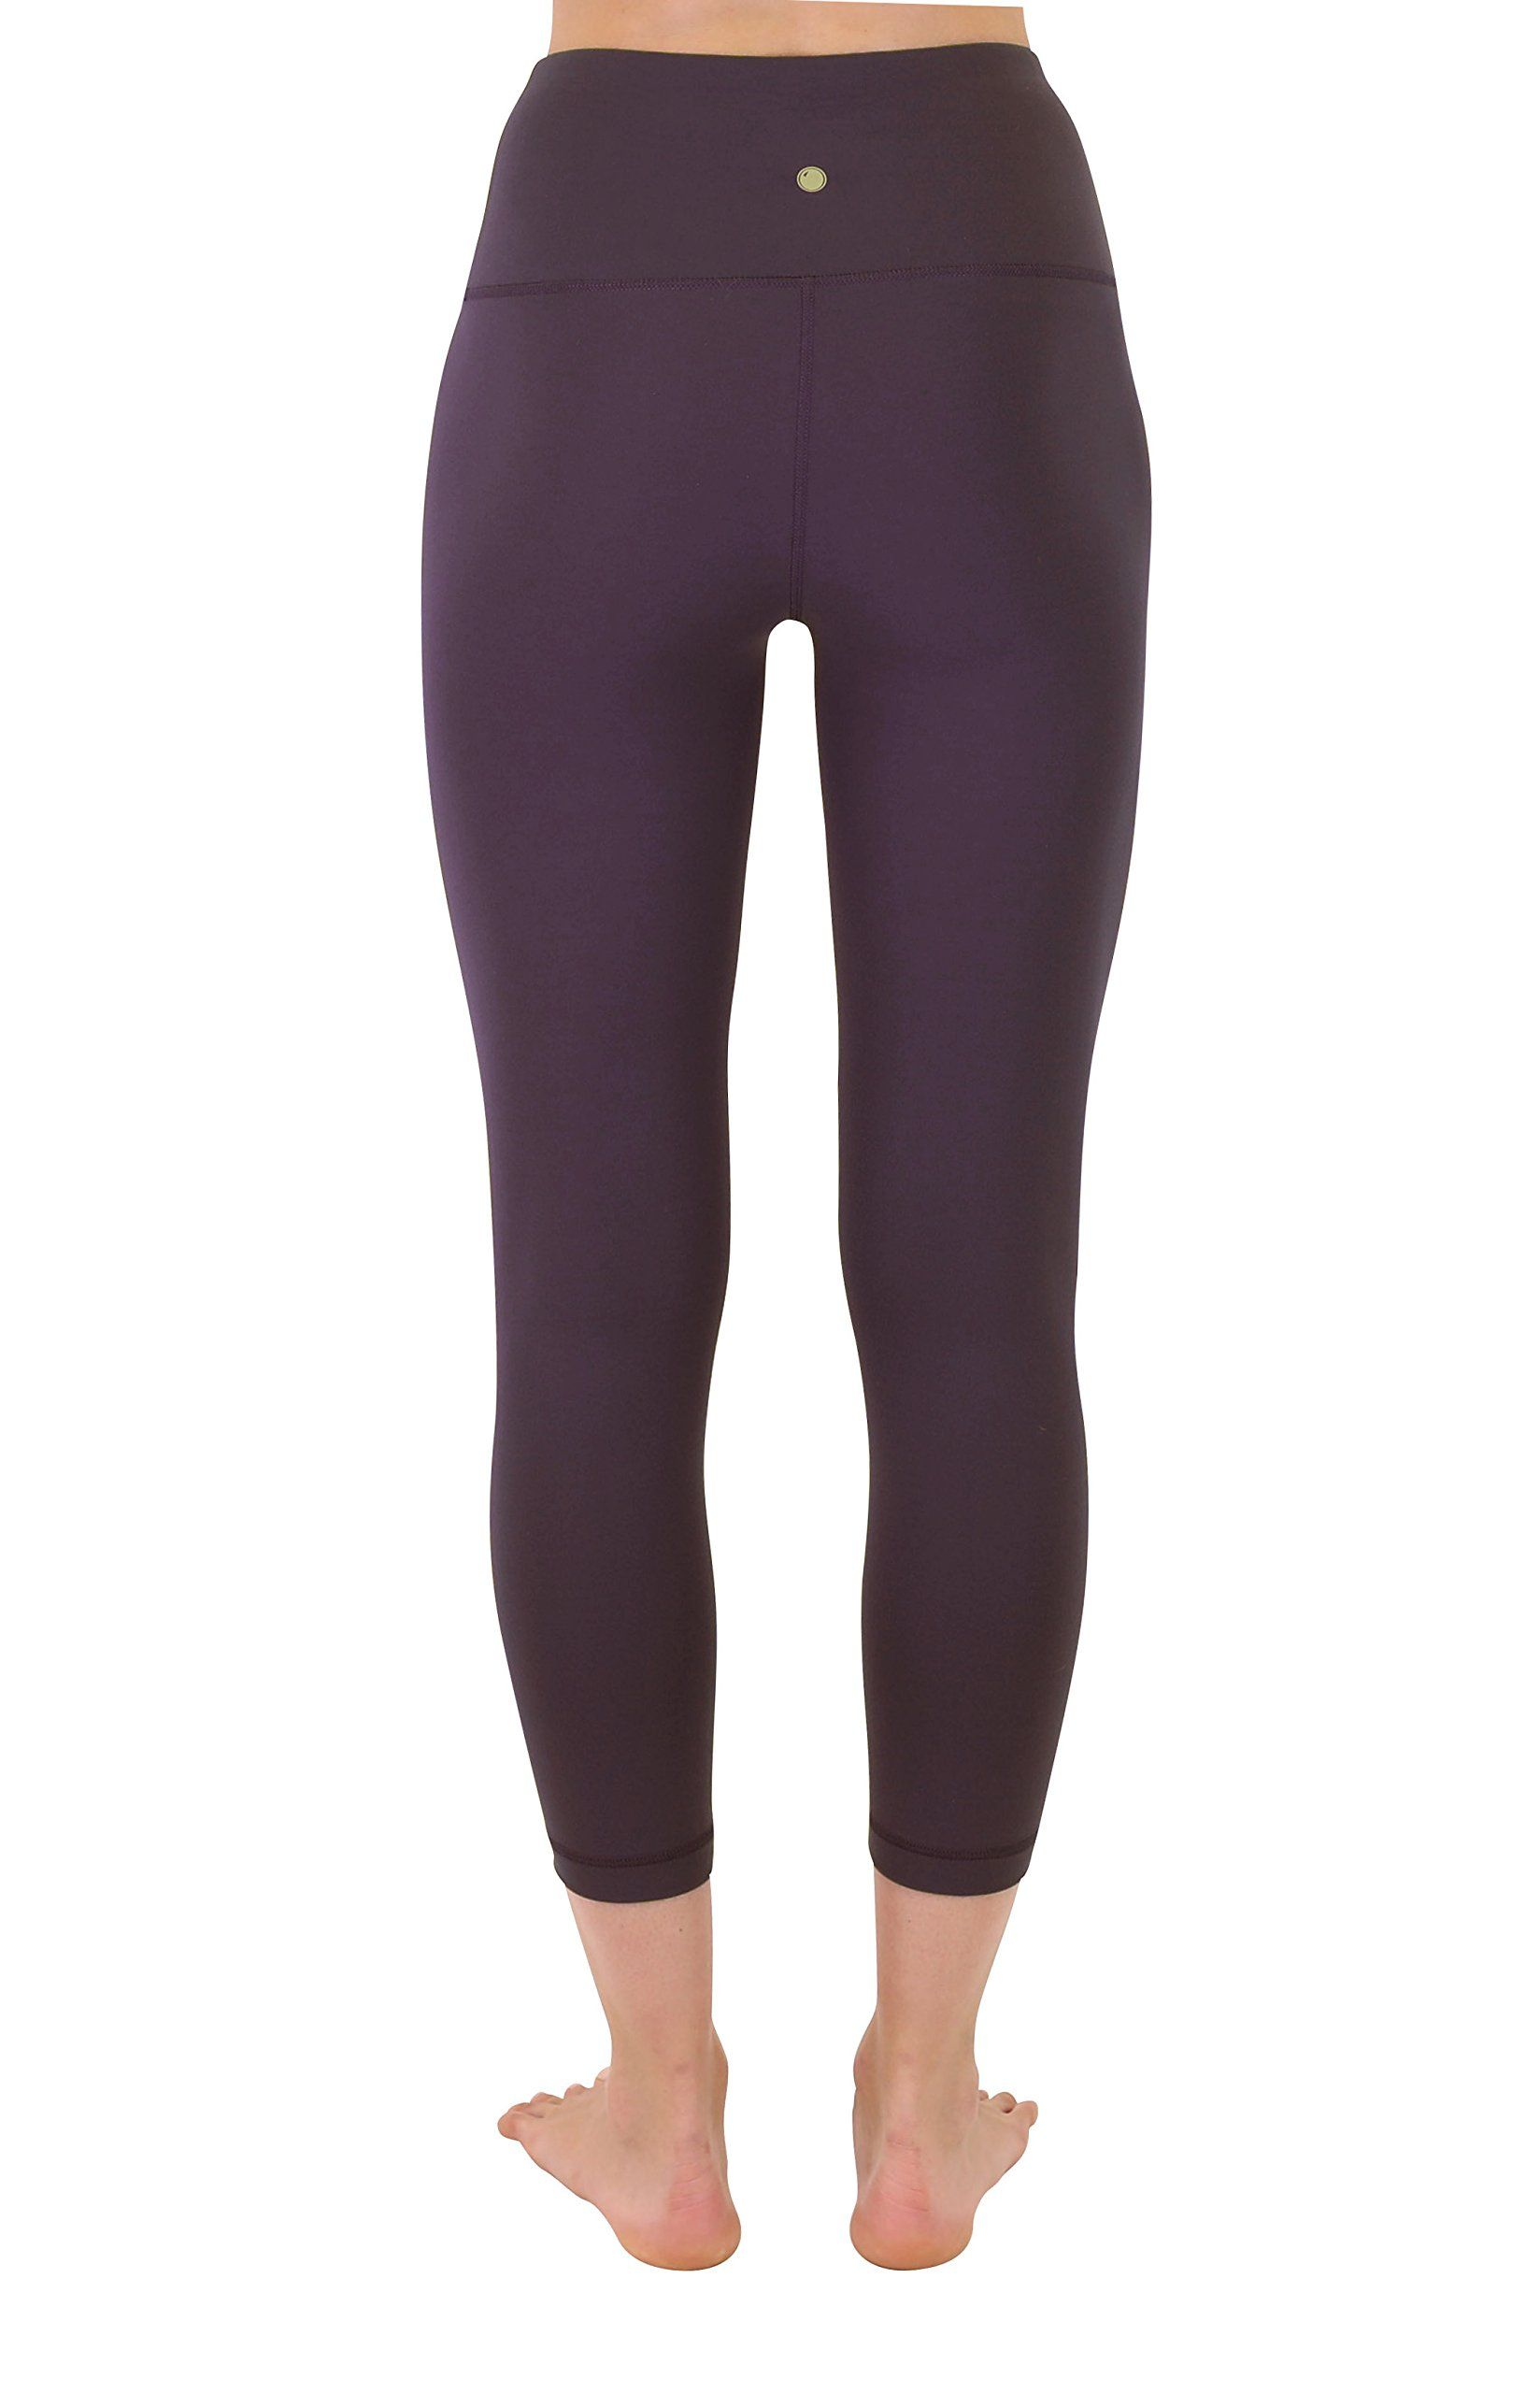 dbcc7ee512 Yogalicious High Waist Ultra Soft Lightweight Capris  High Rise Yoga Pants  Fig Sugar Large -- Check out the image by visiting the link.